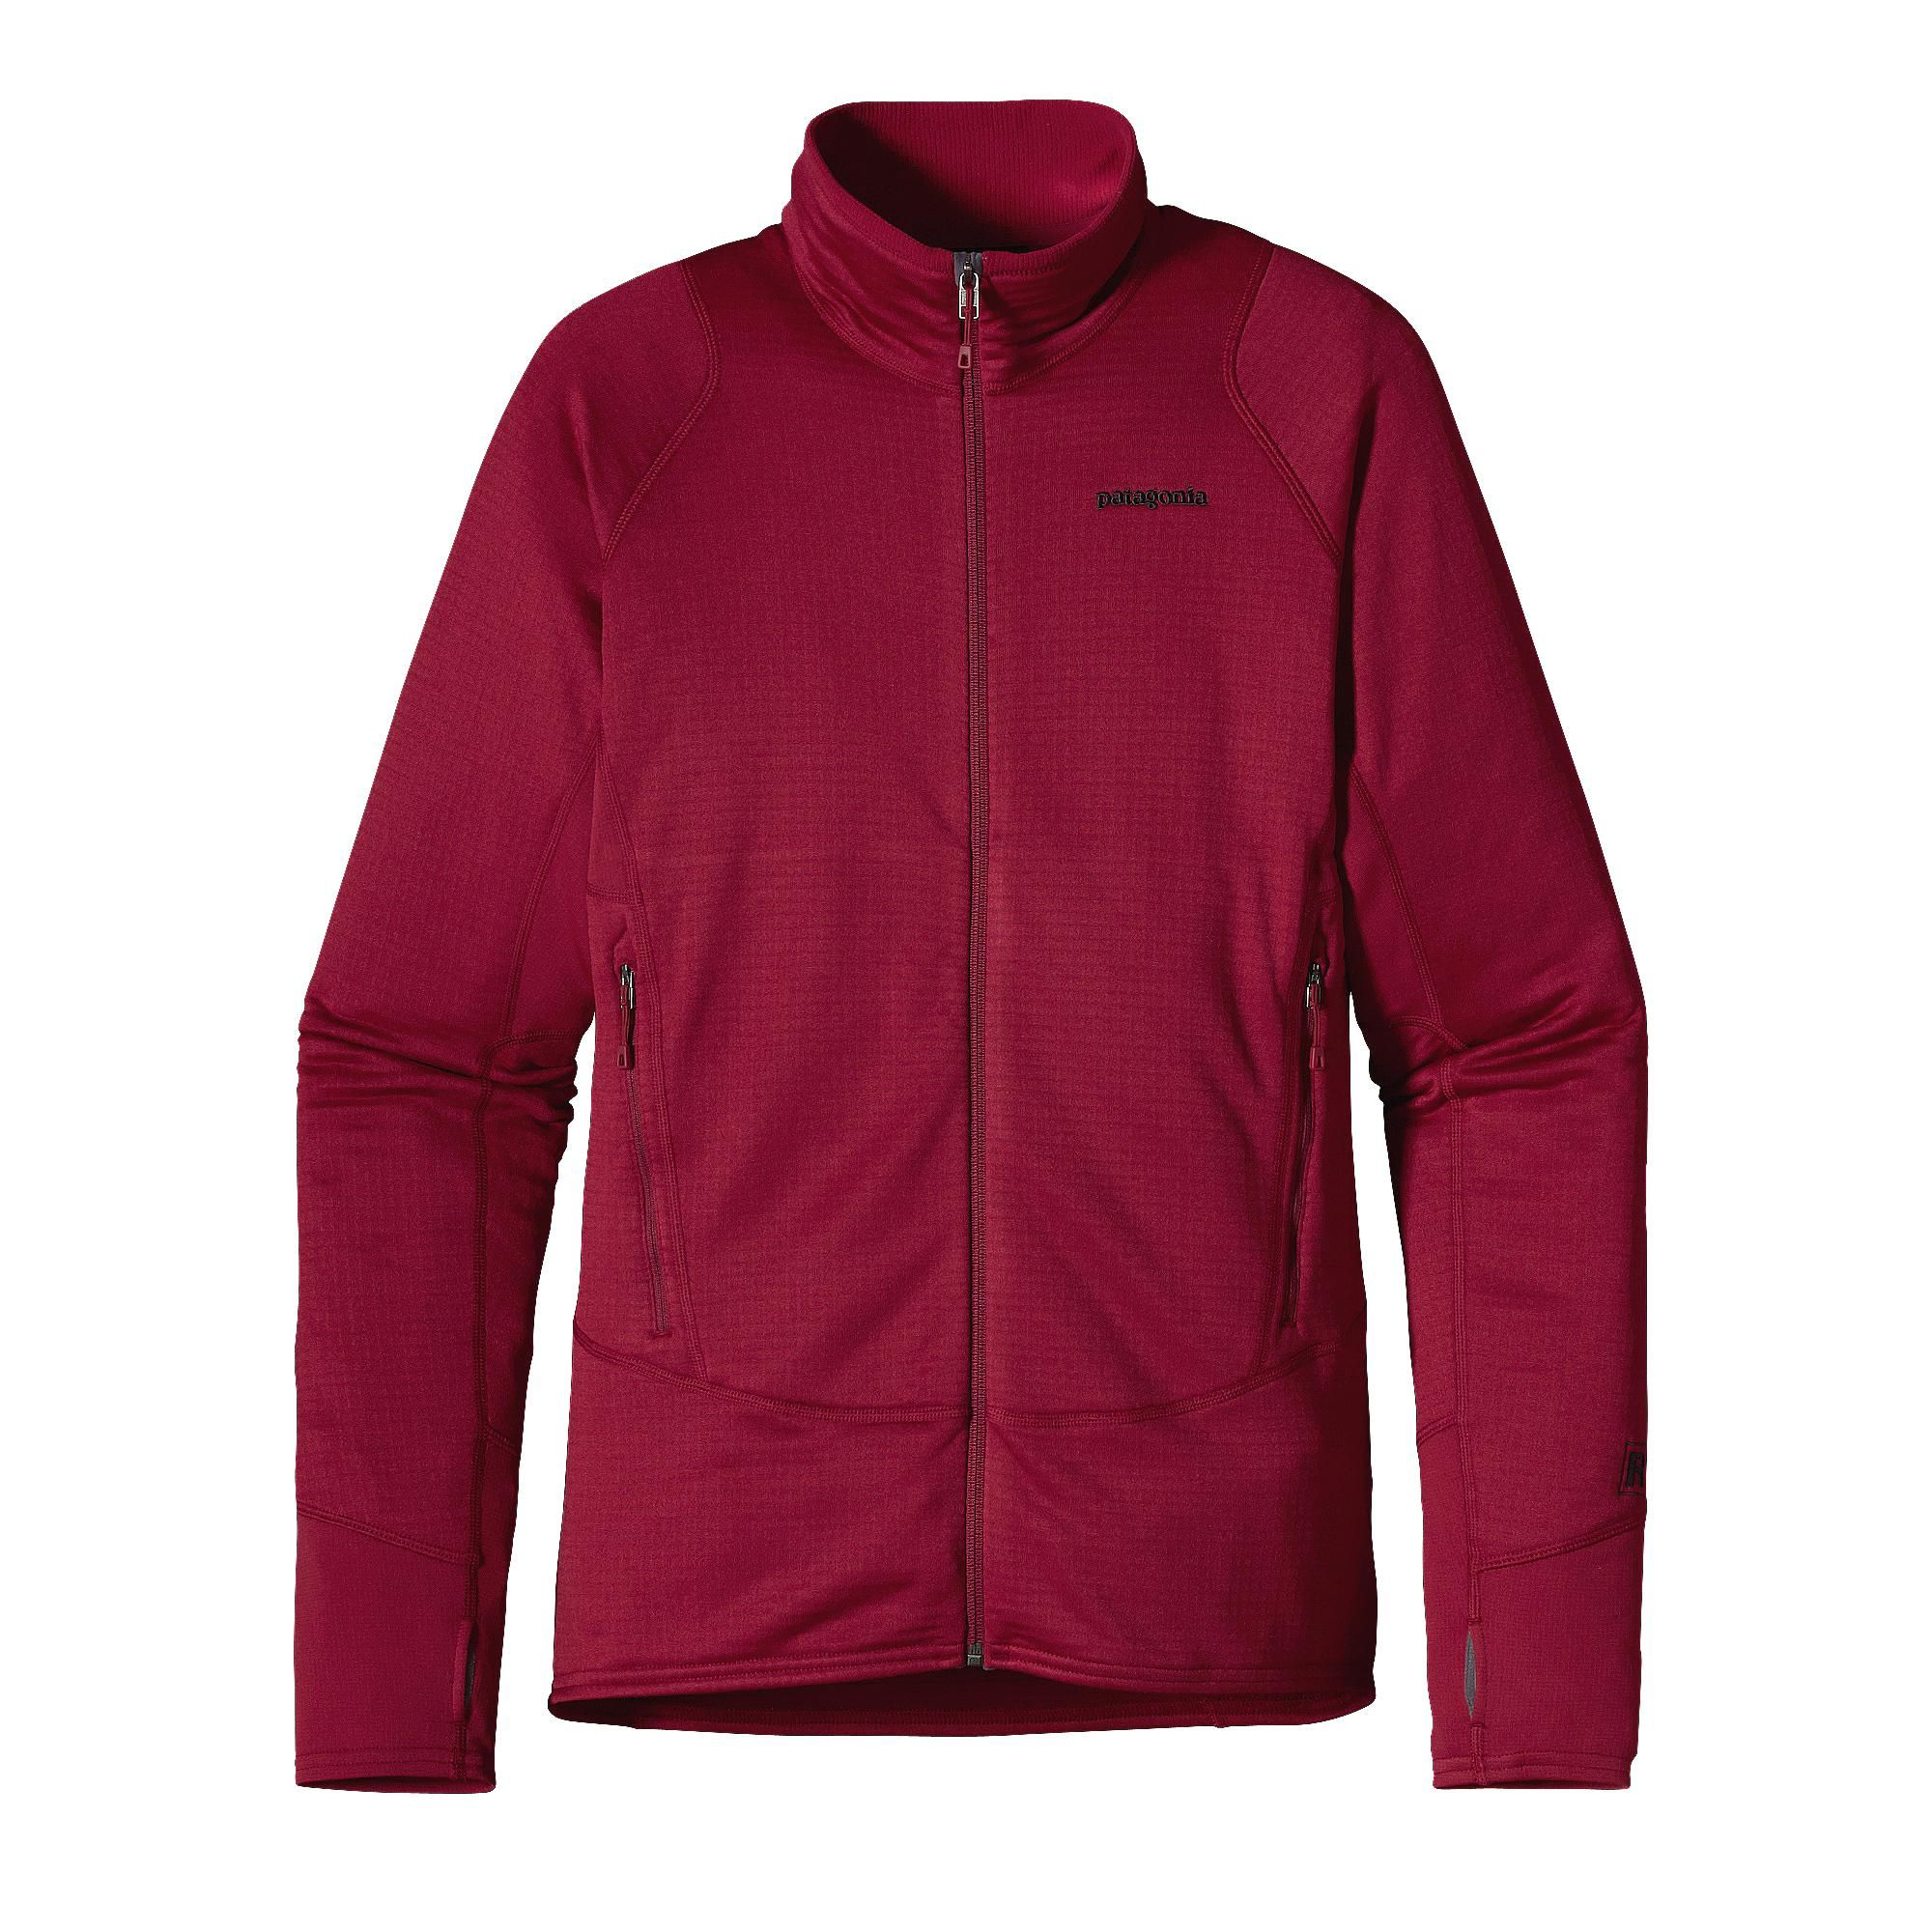 2013 Patagonia Men's R1 FullZip Fleece Jacket (40127417